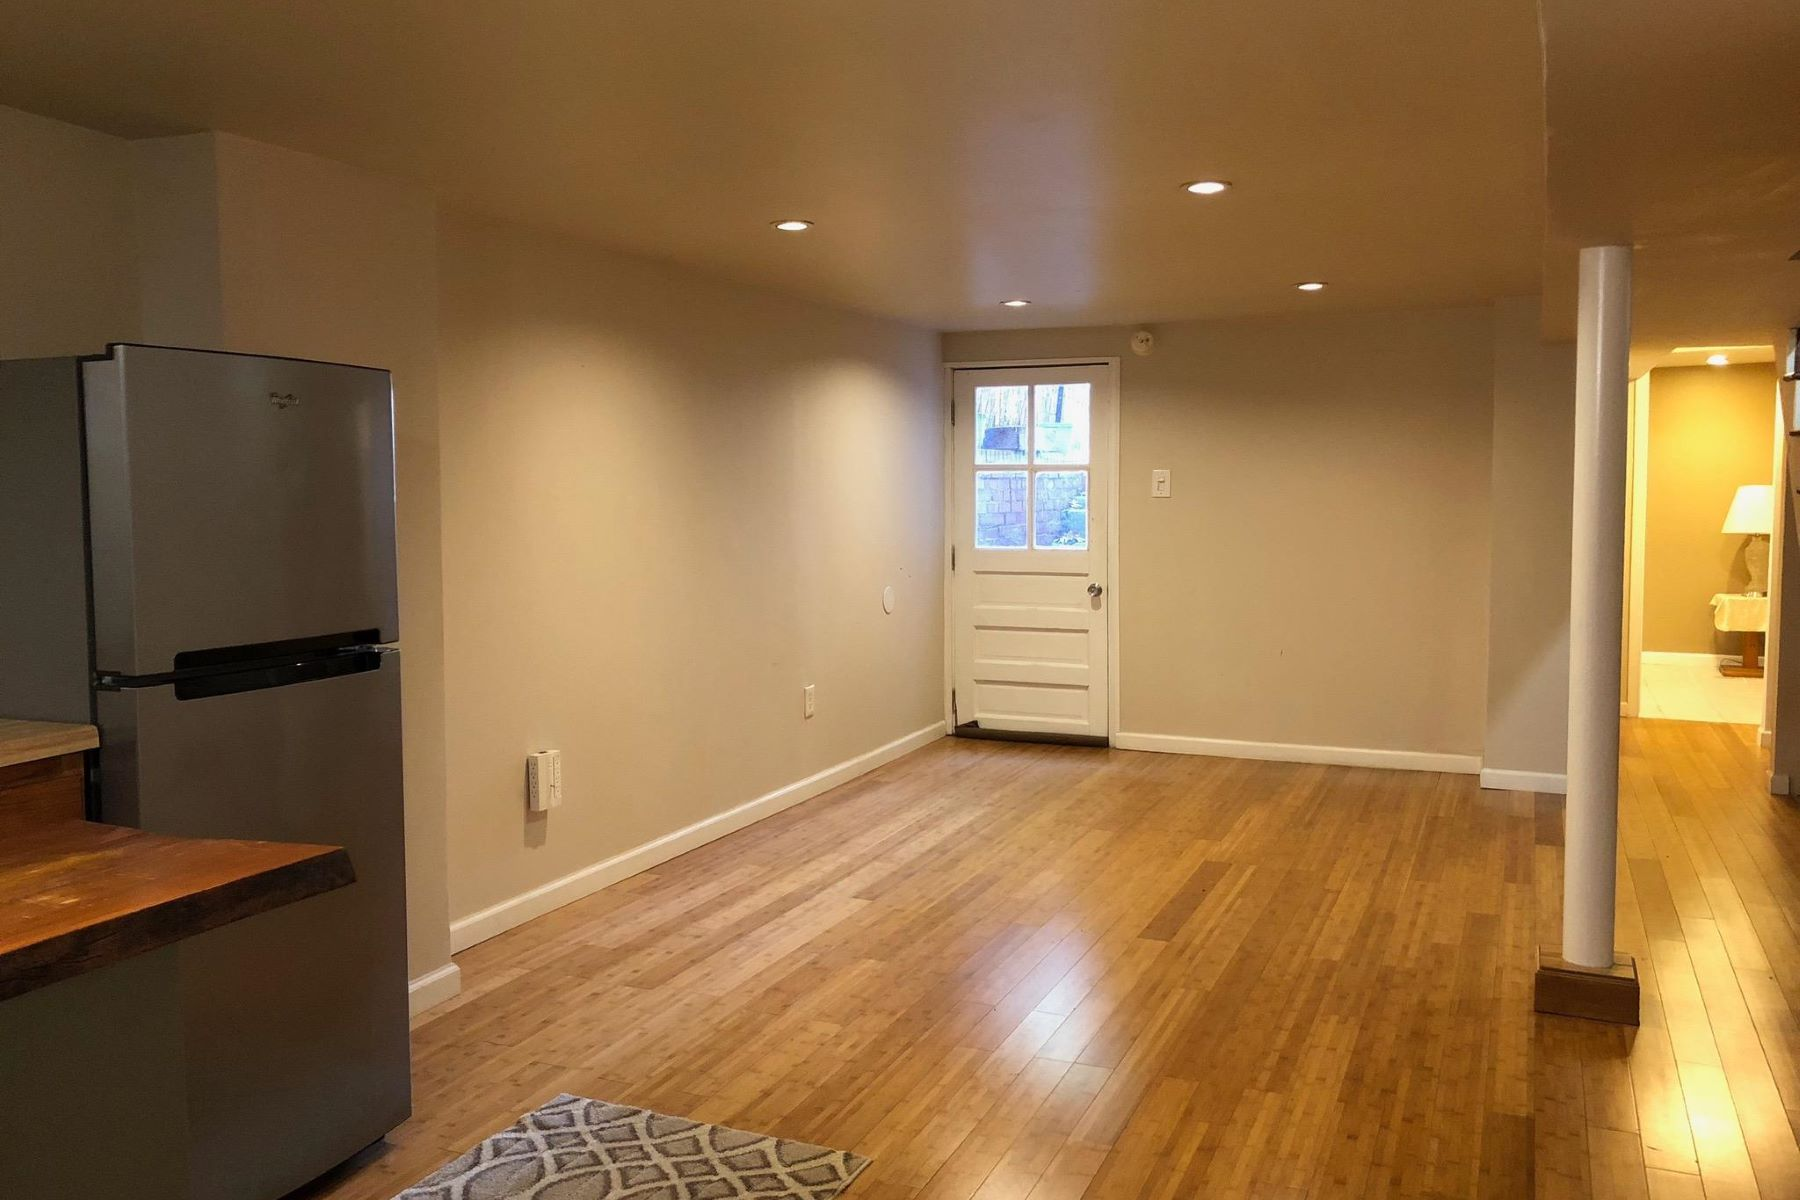 Additional photo for property listing at 3725 New Hampshire Ave Nw 3725 New Hampshire Ave Nw Washington, District Of Columbia 20010 United States